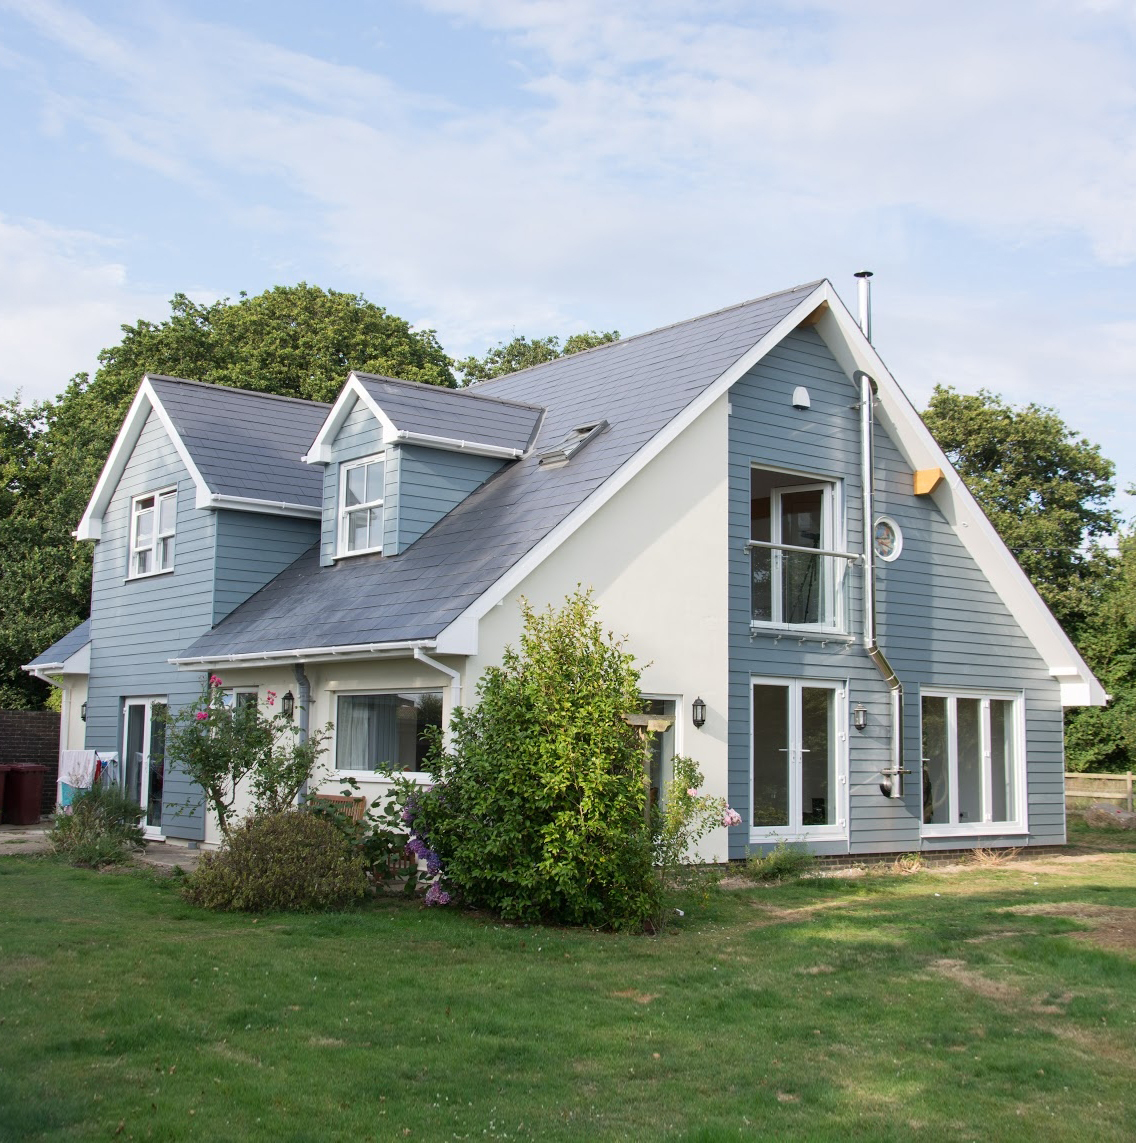 Space Style Home Design Architectural Services in Gosport